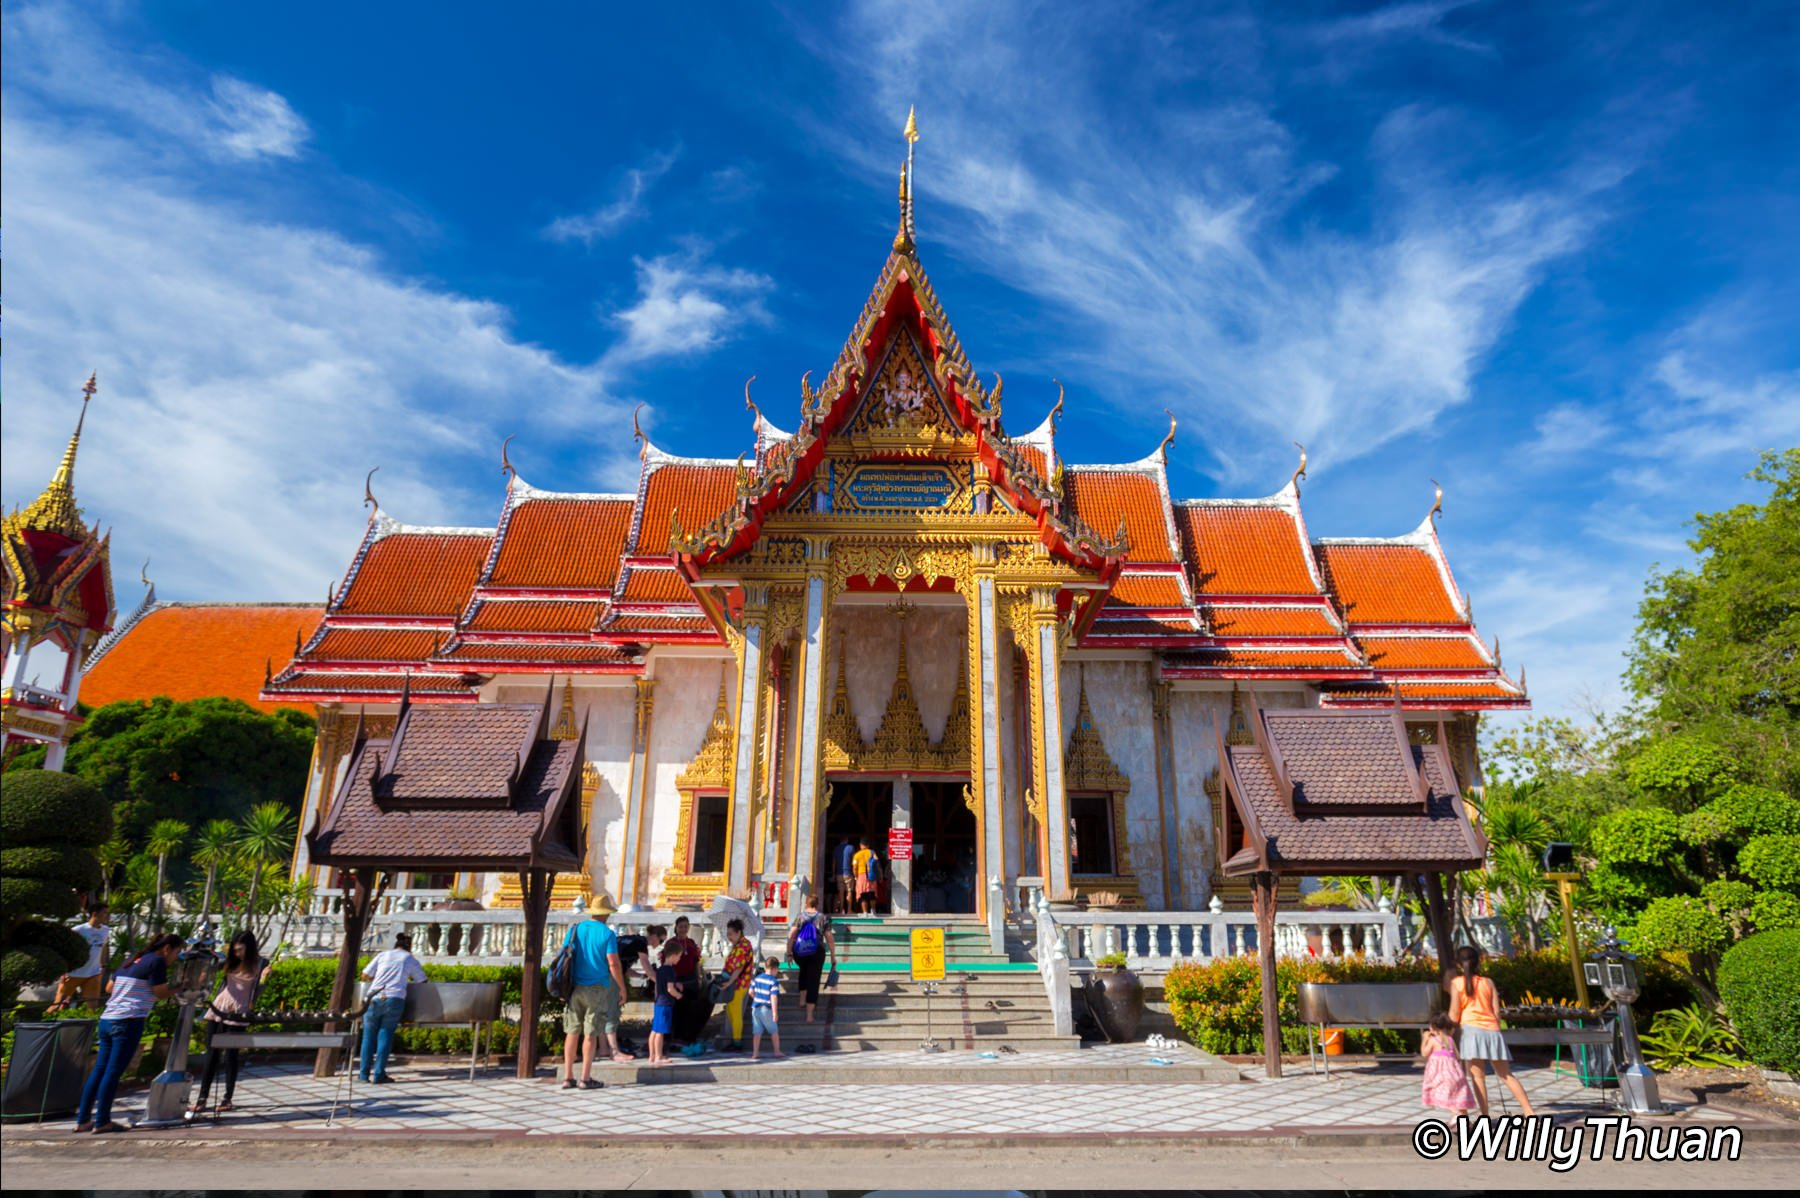 Free Things to Do in Phuket